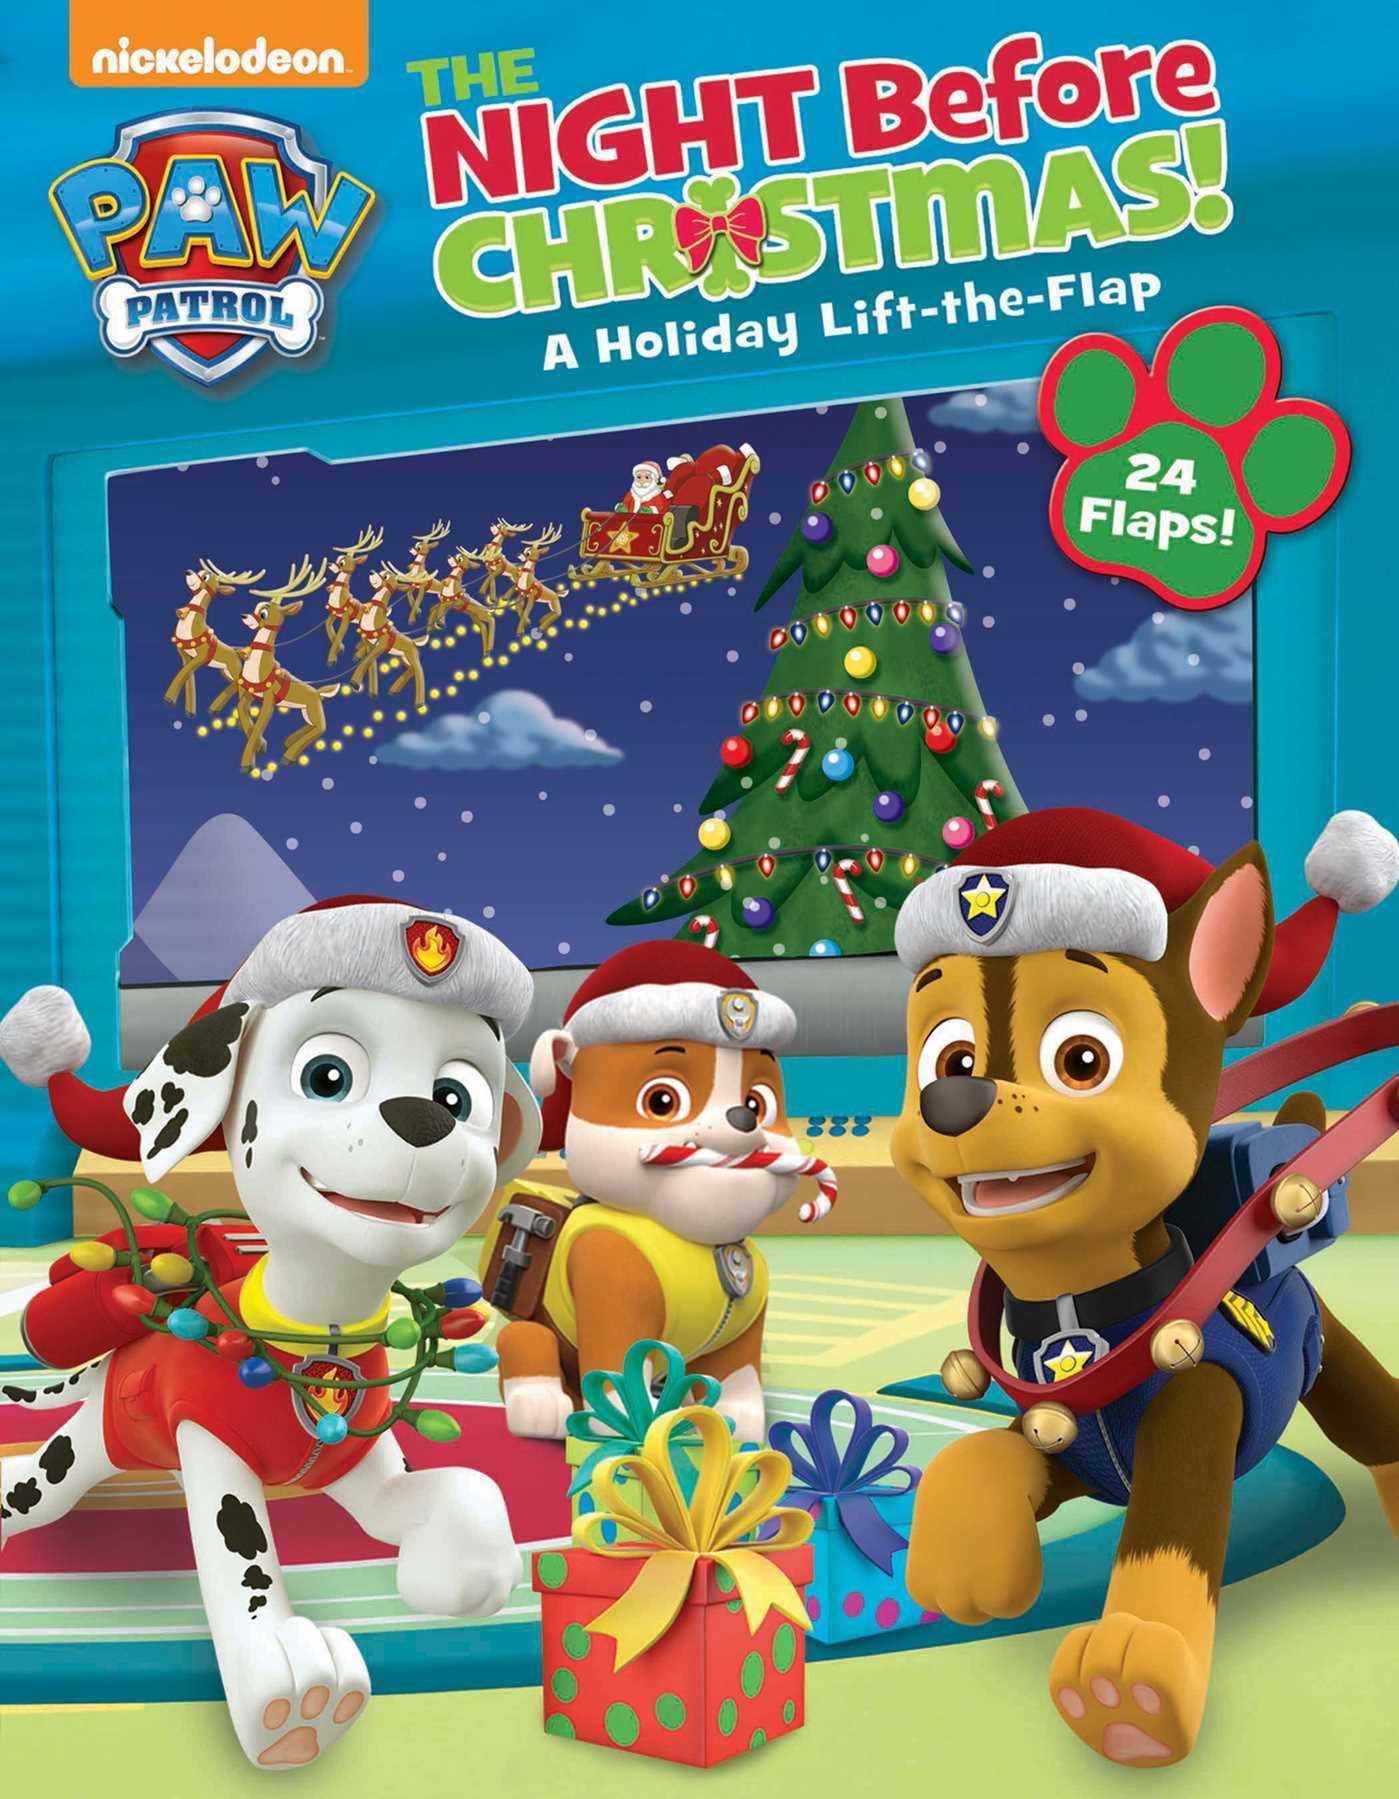 paw patrol the night before christmas 9780794441371 hr - Night Before Christmas Book